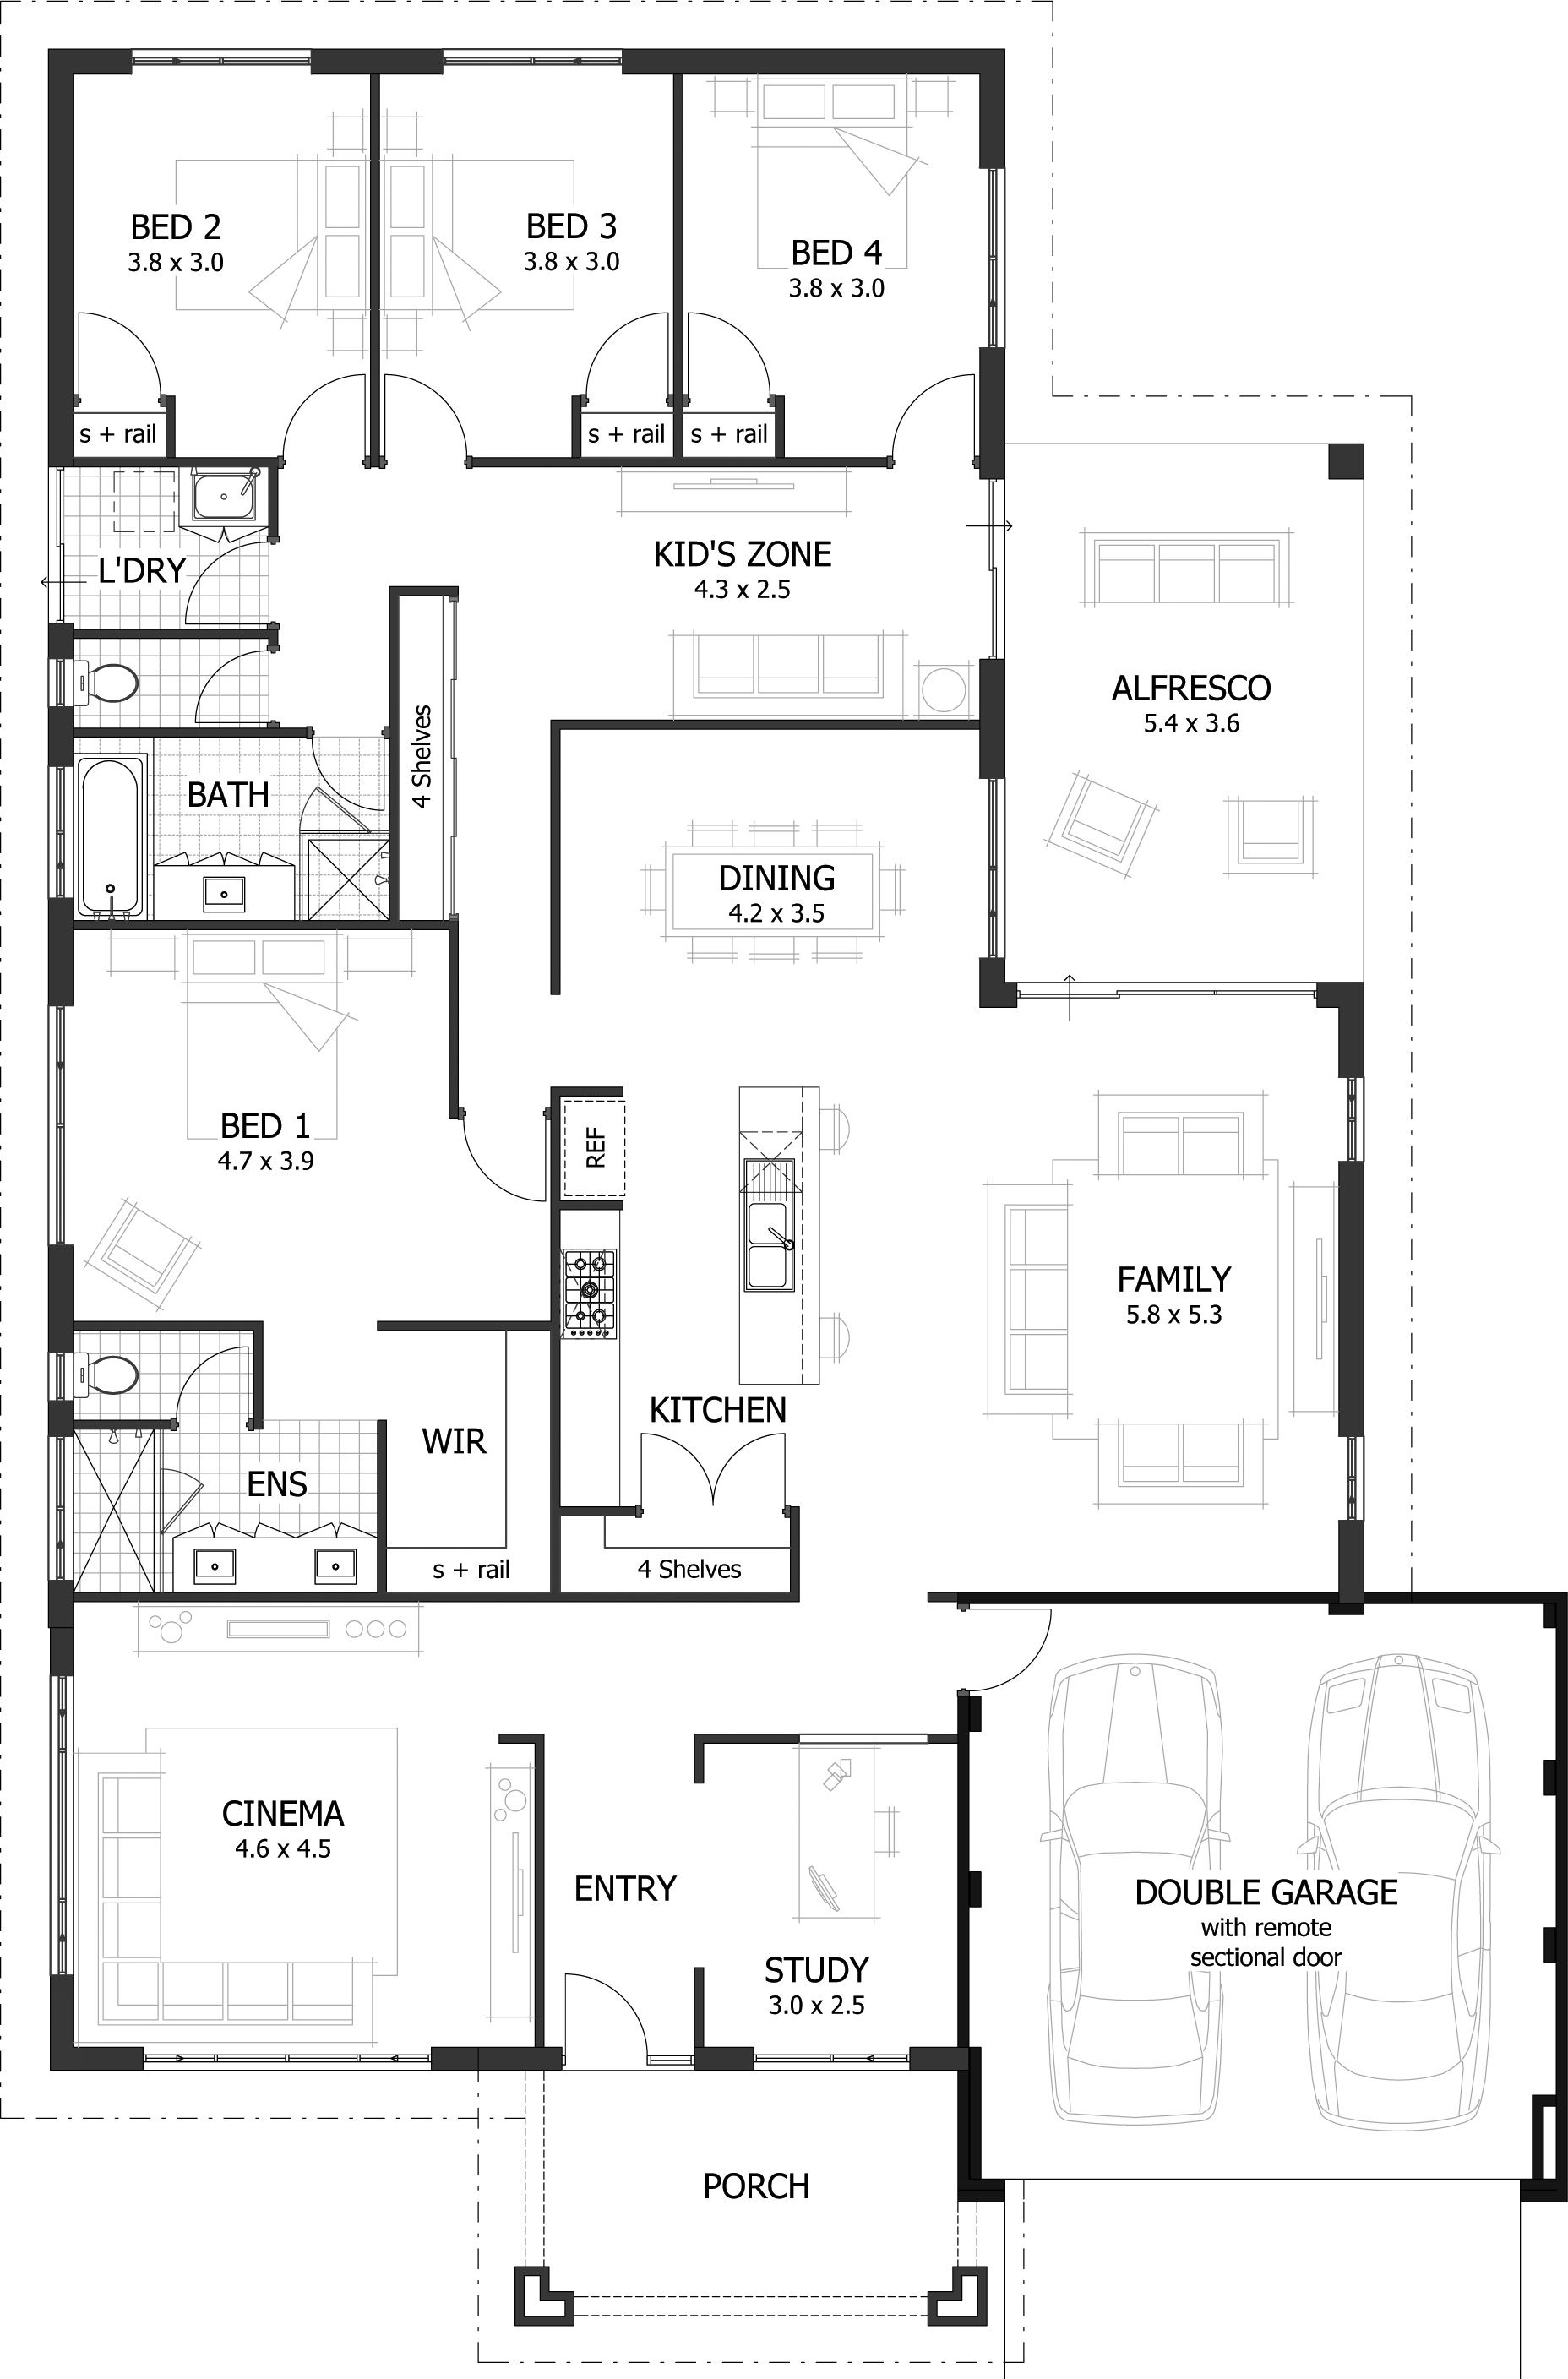 5 bedroom 3 bathroom house plans - 4 Bedroom House Plans Home Designs Celebration Homes